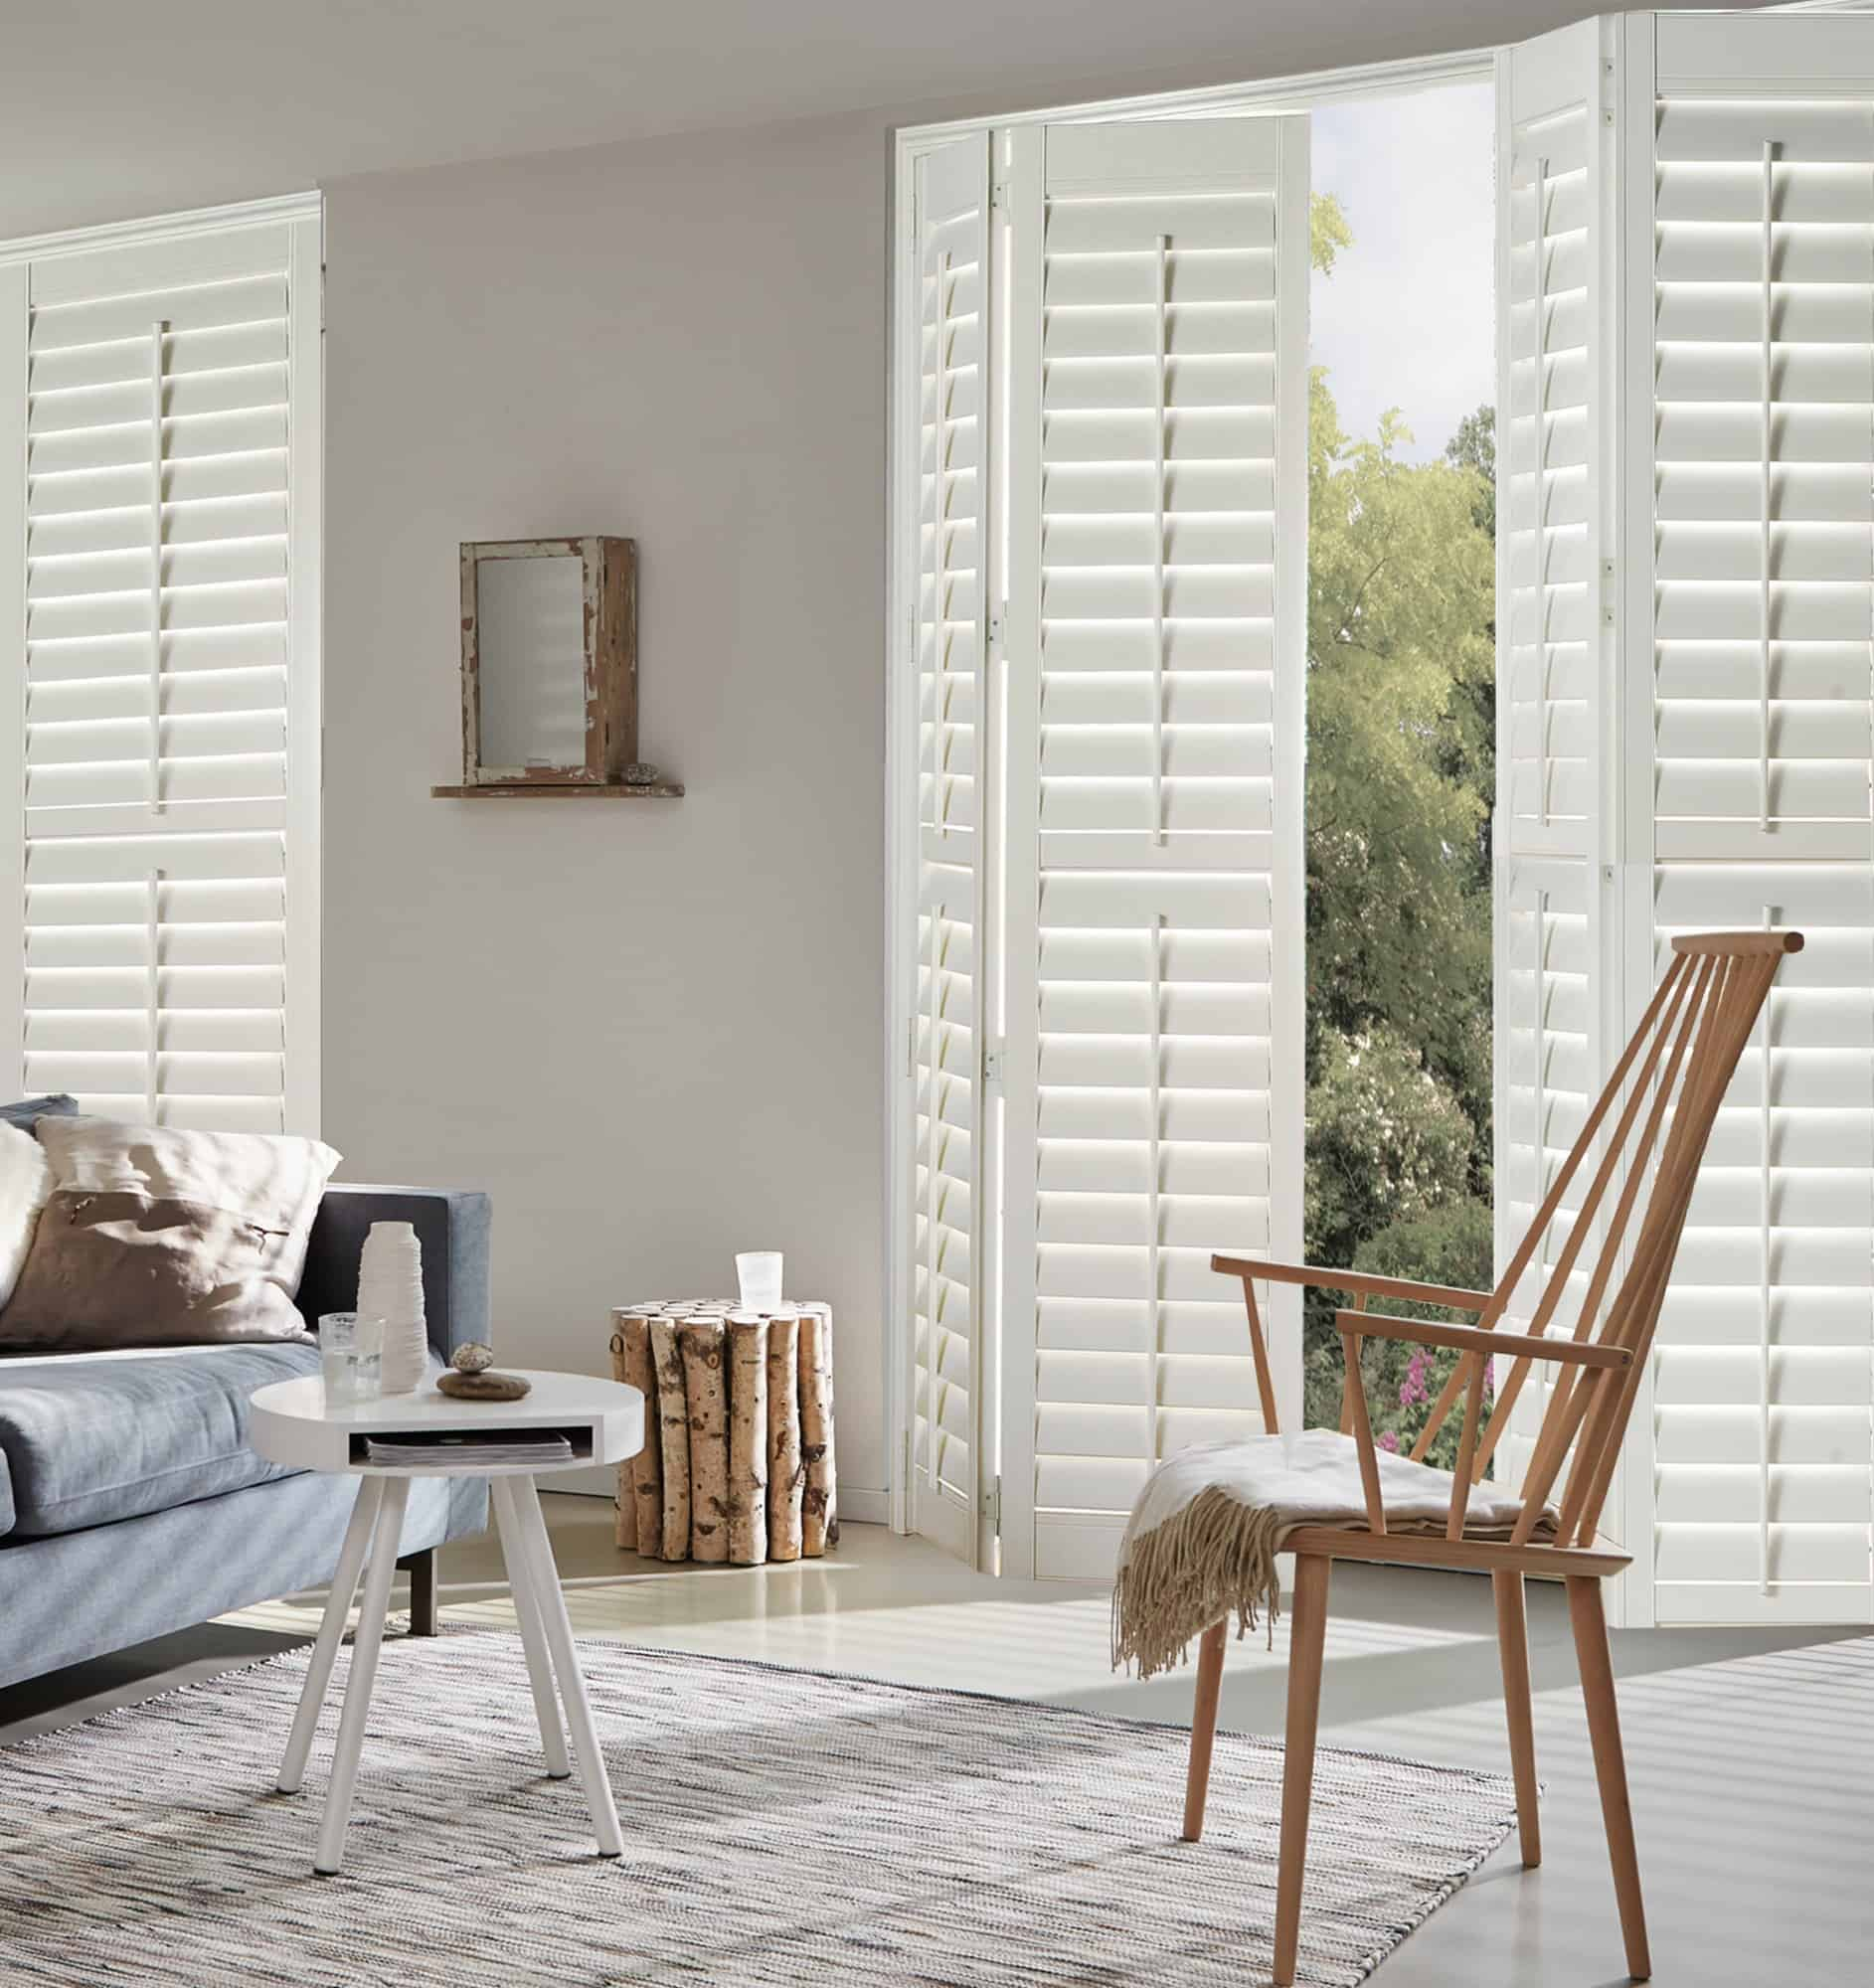 8 Reasons to Choose Faux Wood Shutters - The Design Sheppard